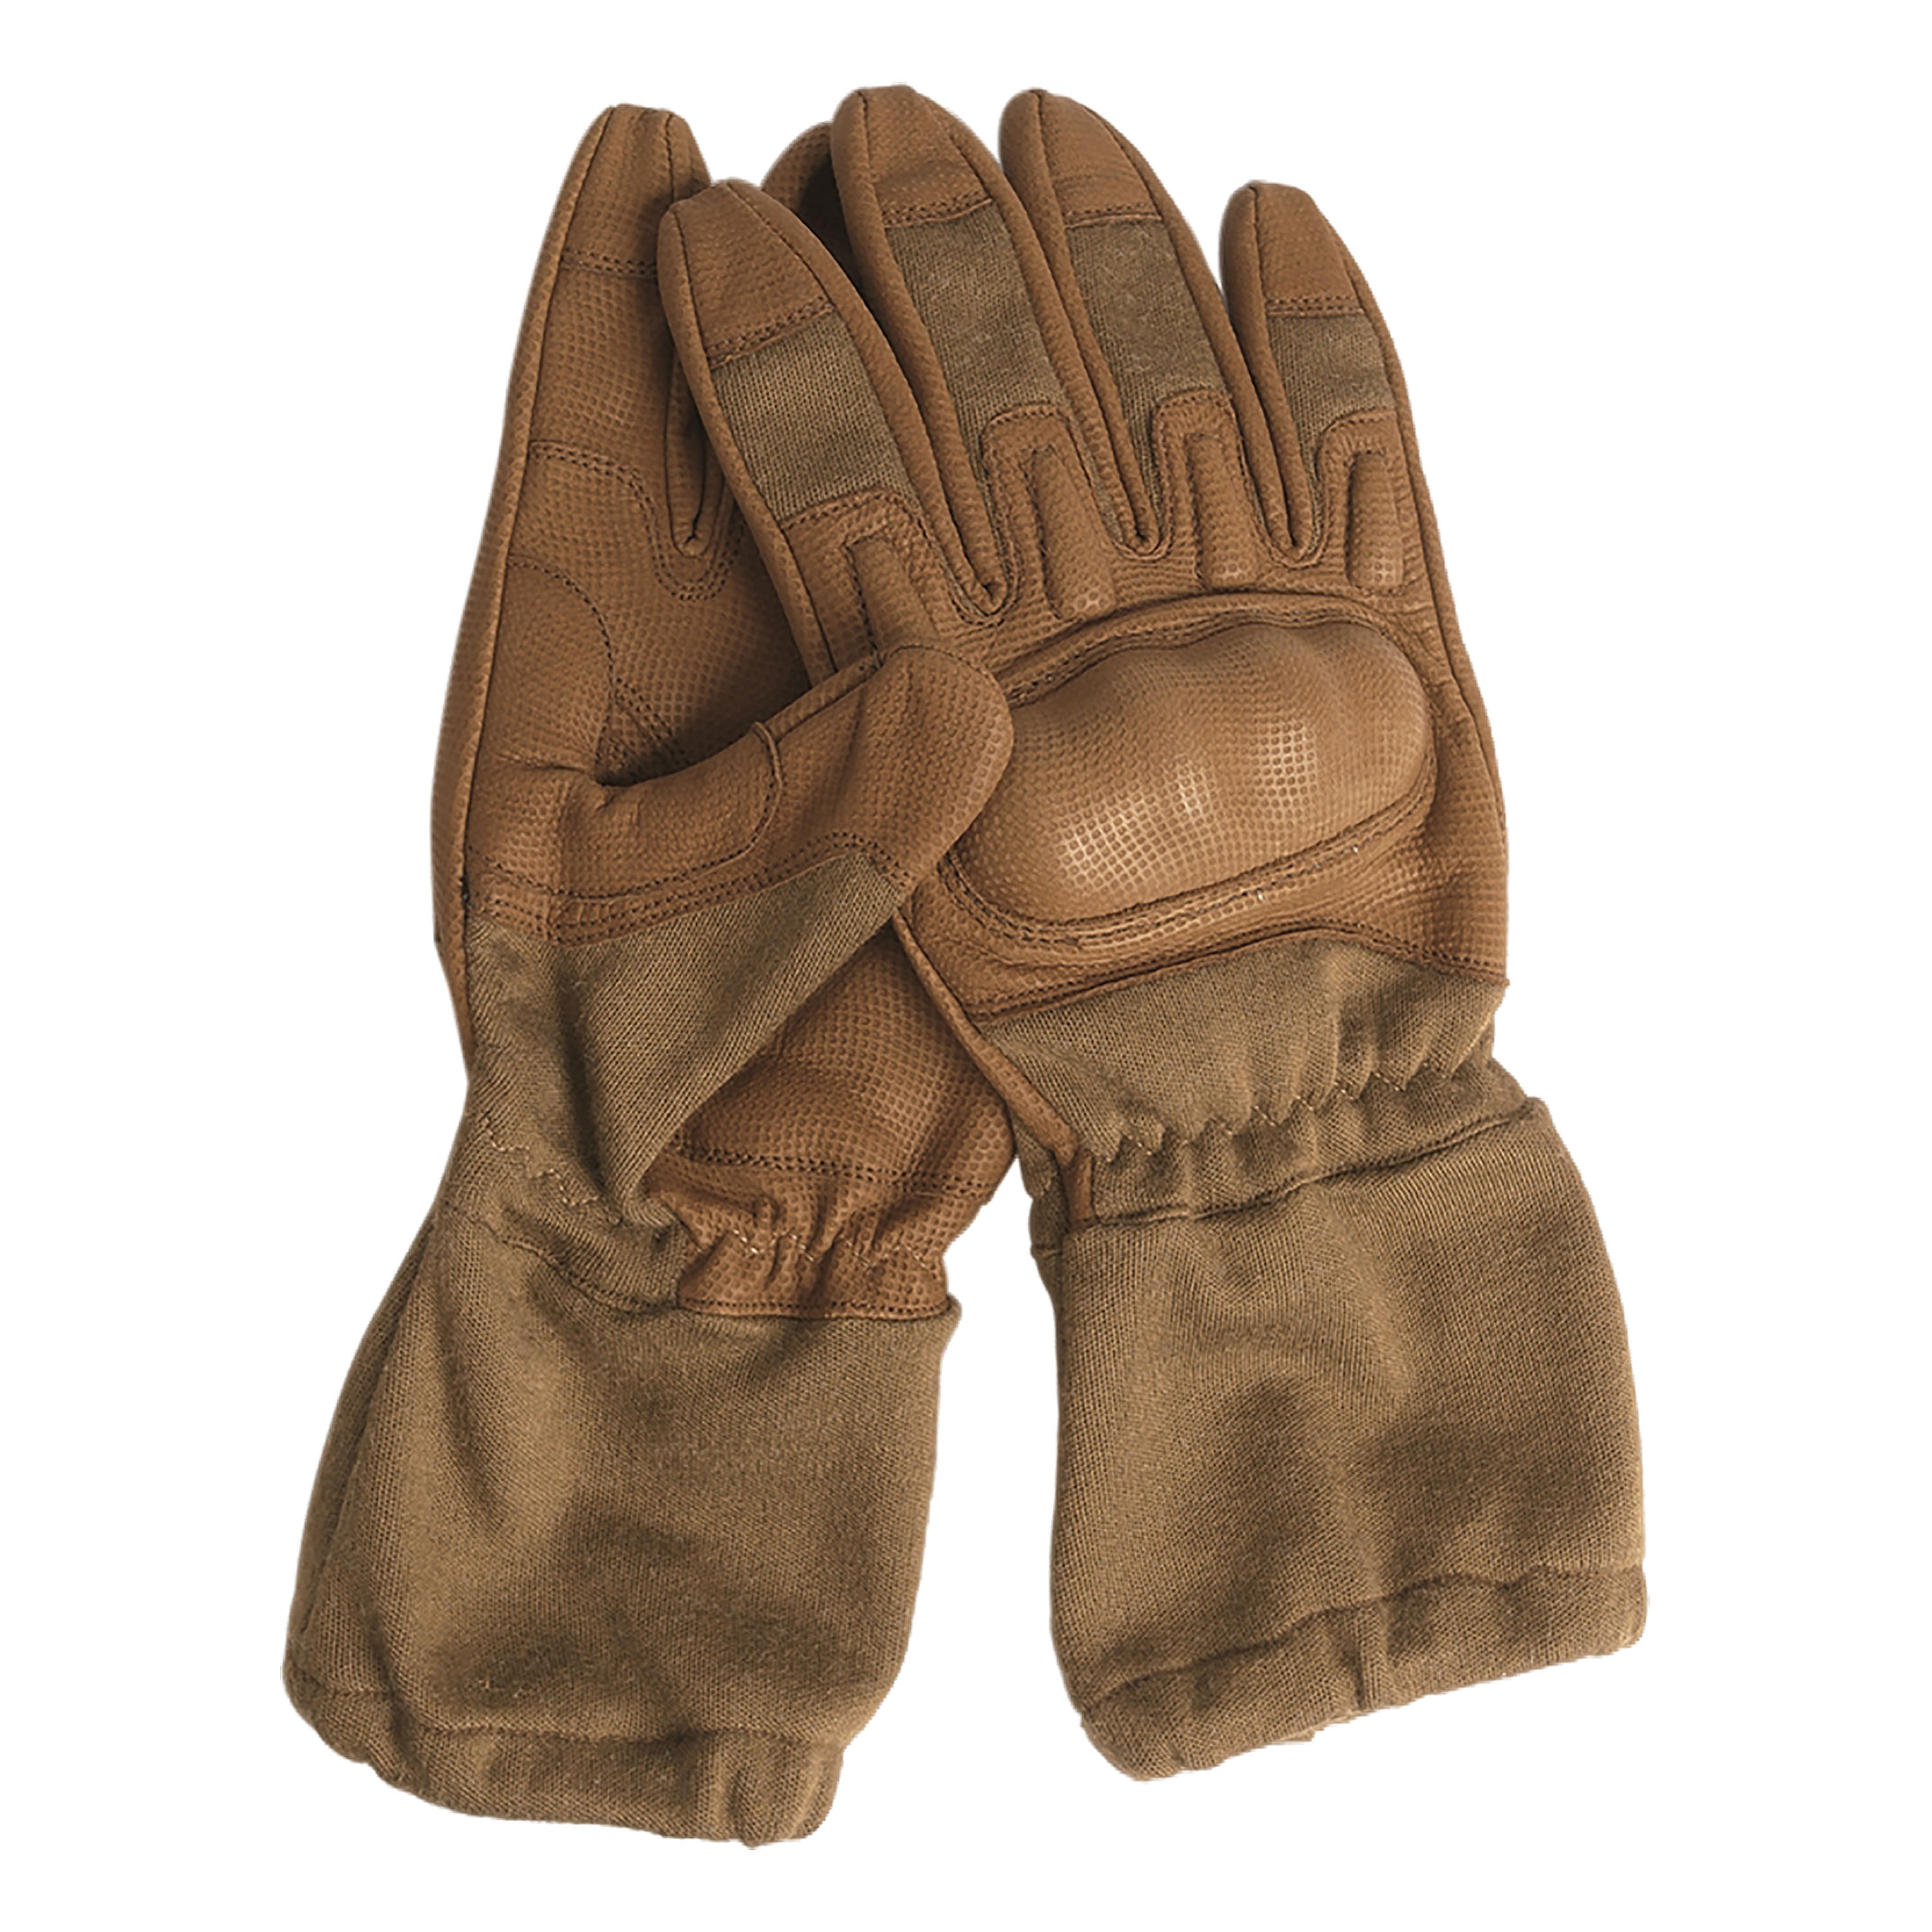 Action Gloves Flame Retardant with Cuffs coyote